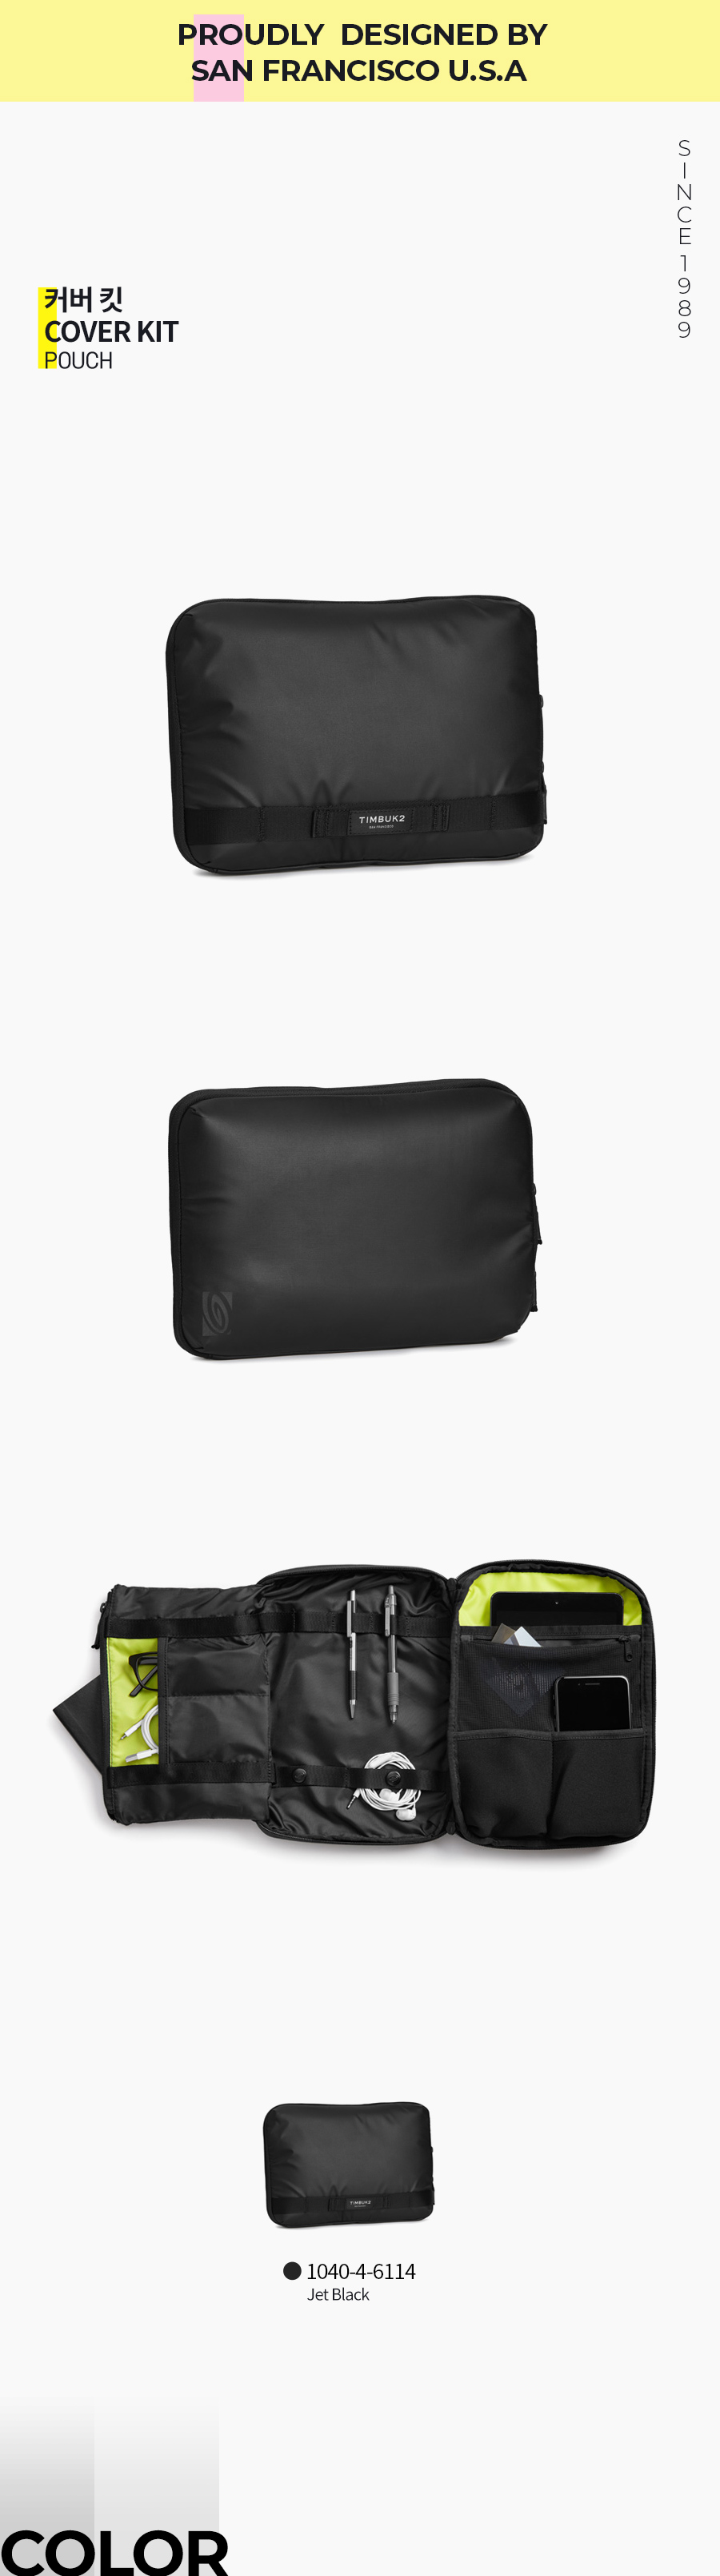 timbuk2 walletAccessory